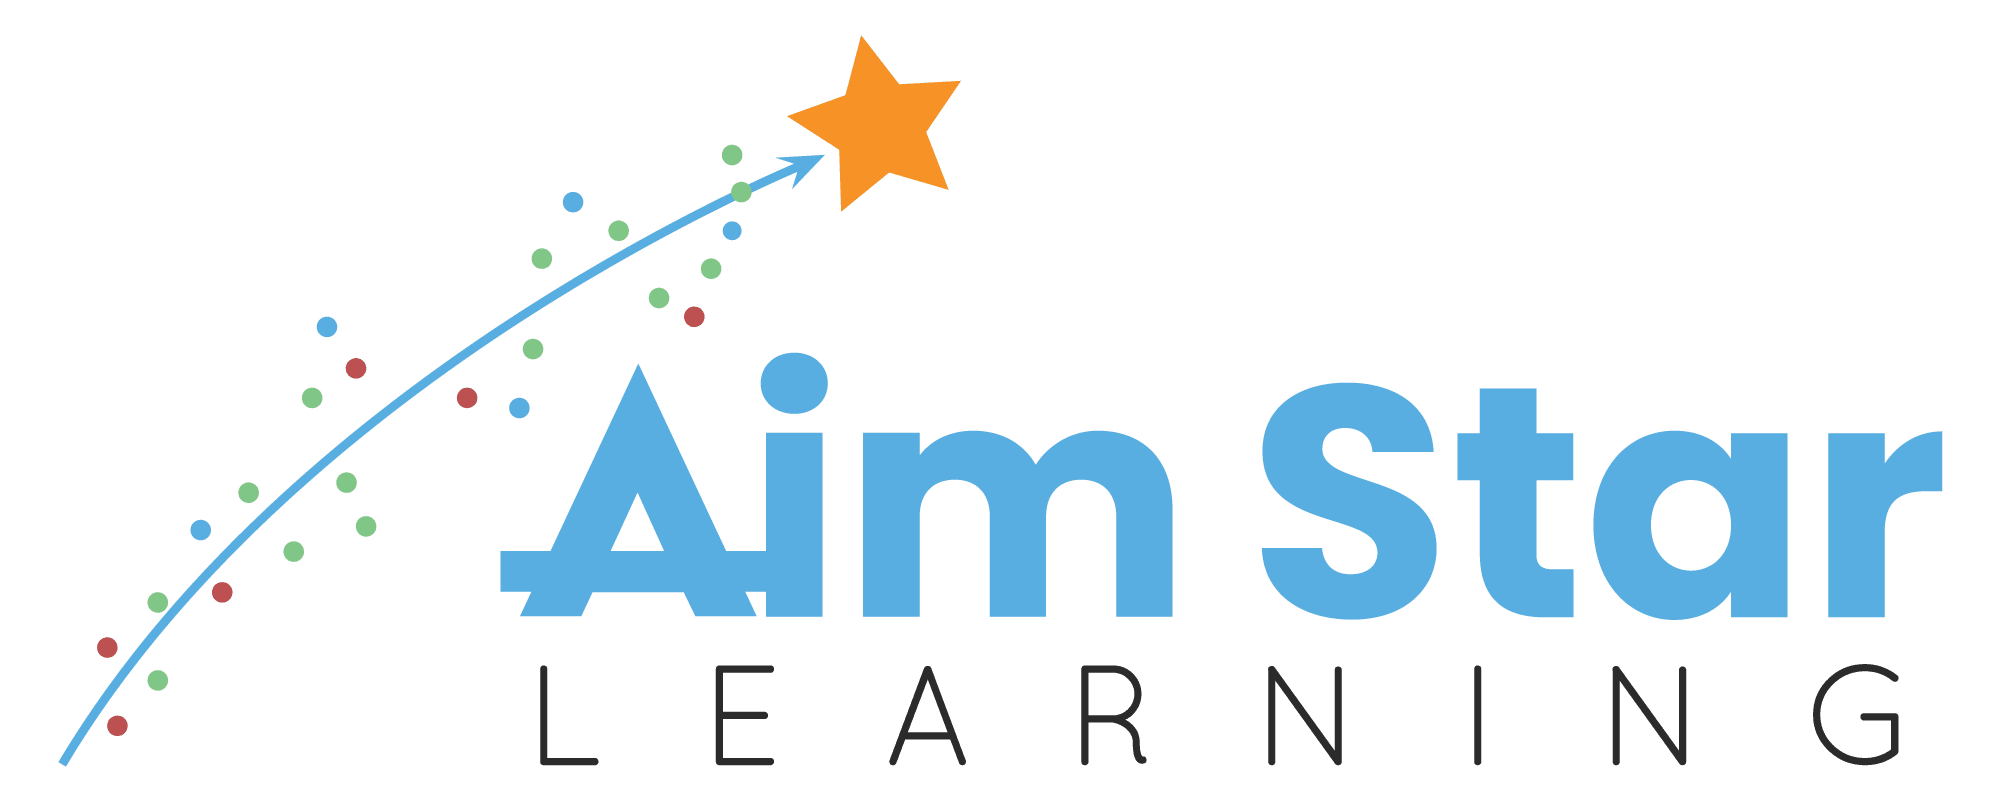 37787757_Aim-Star-Learning_FINAL